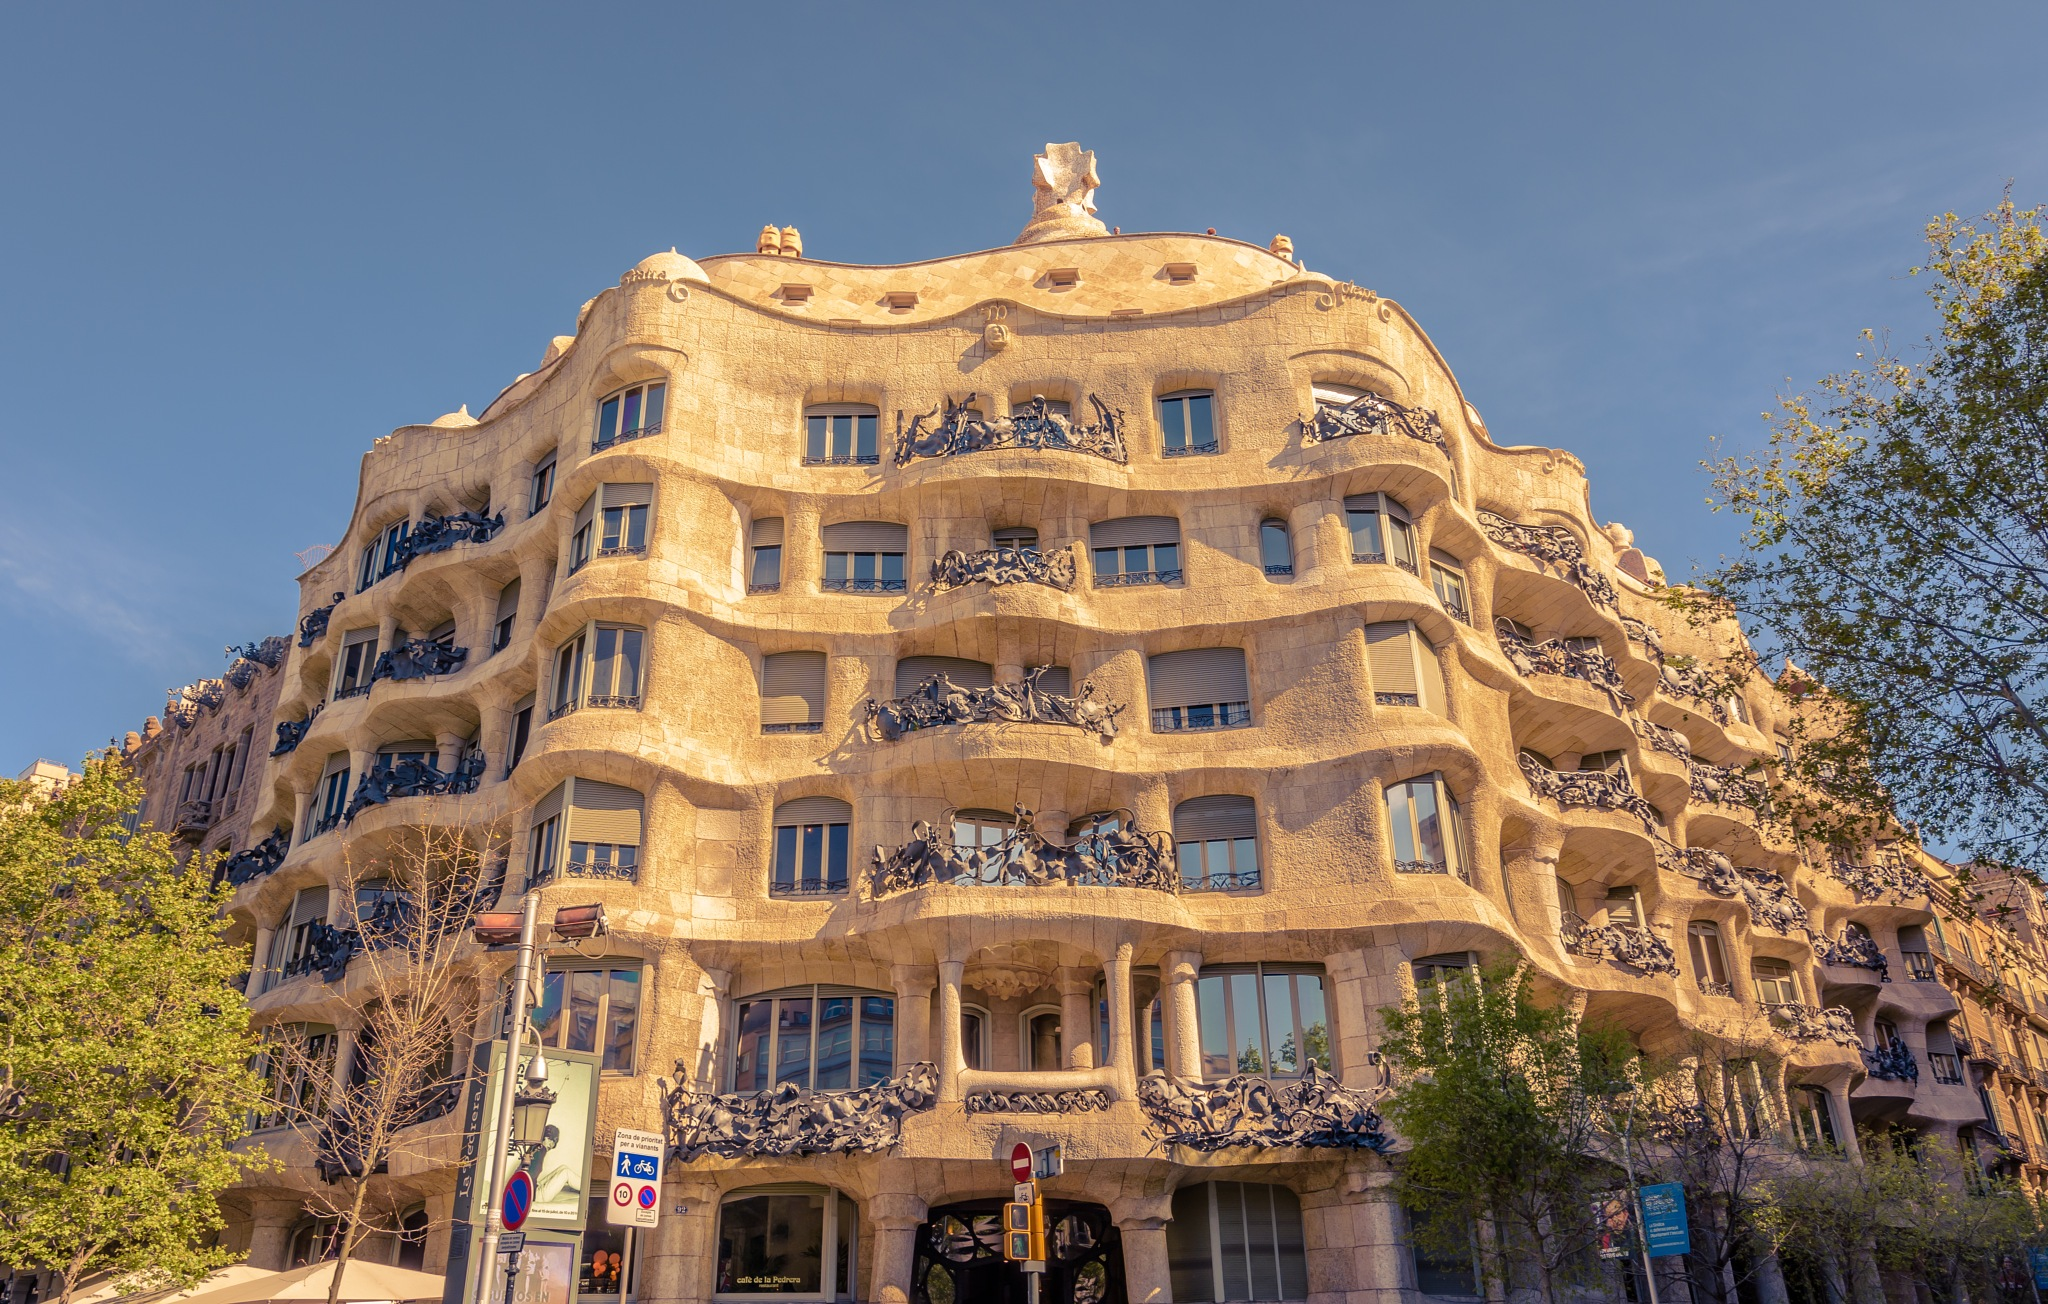 Casa Mila by Dominik Murko